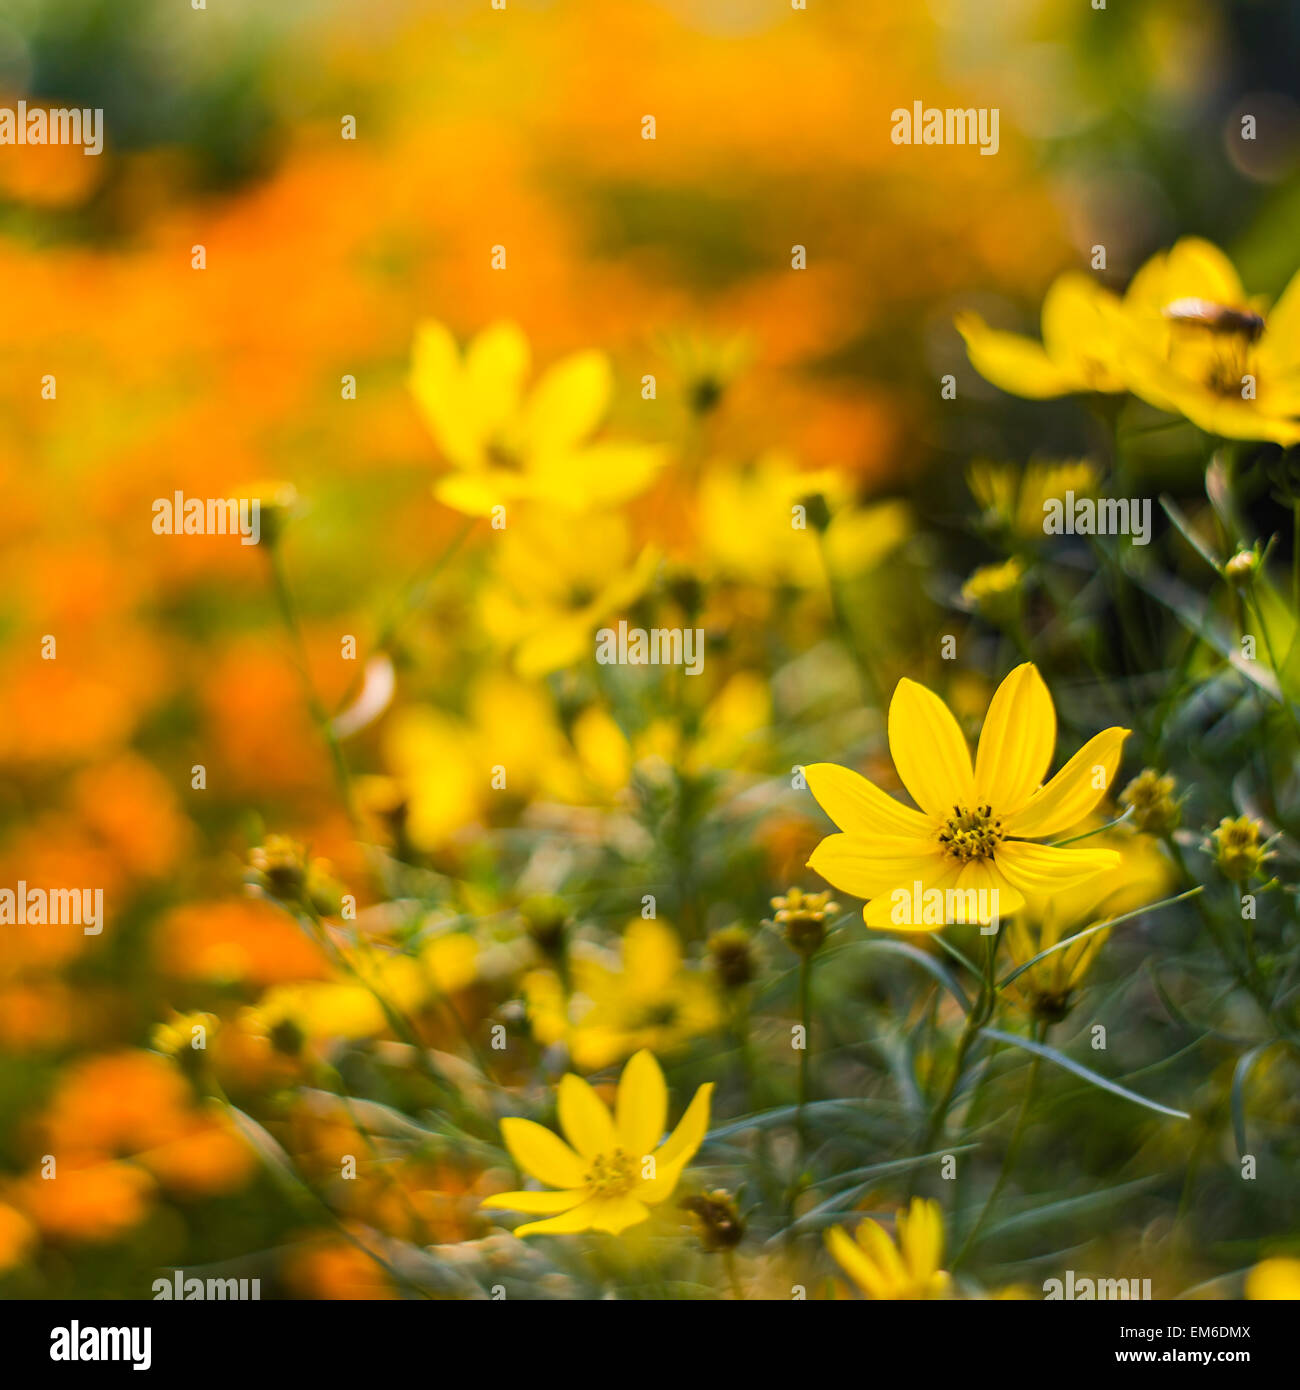 Cosmos flowers on softly blurred background - Stock Image